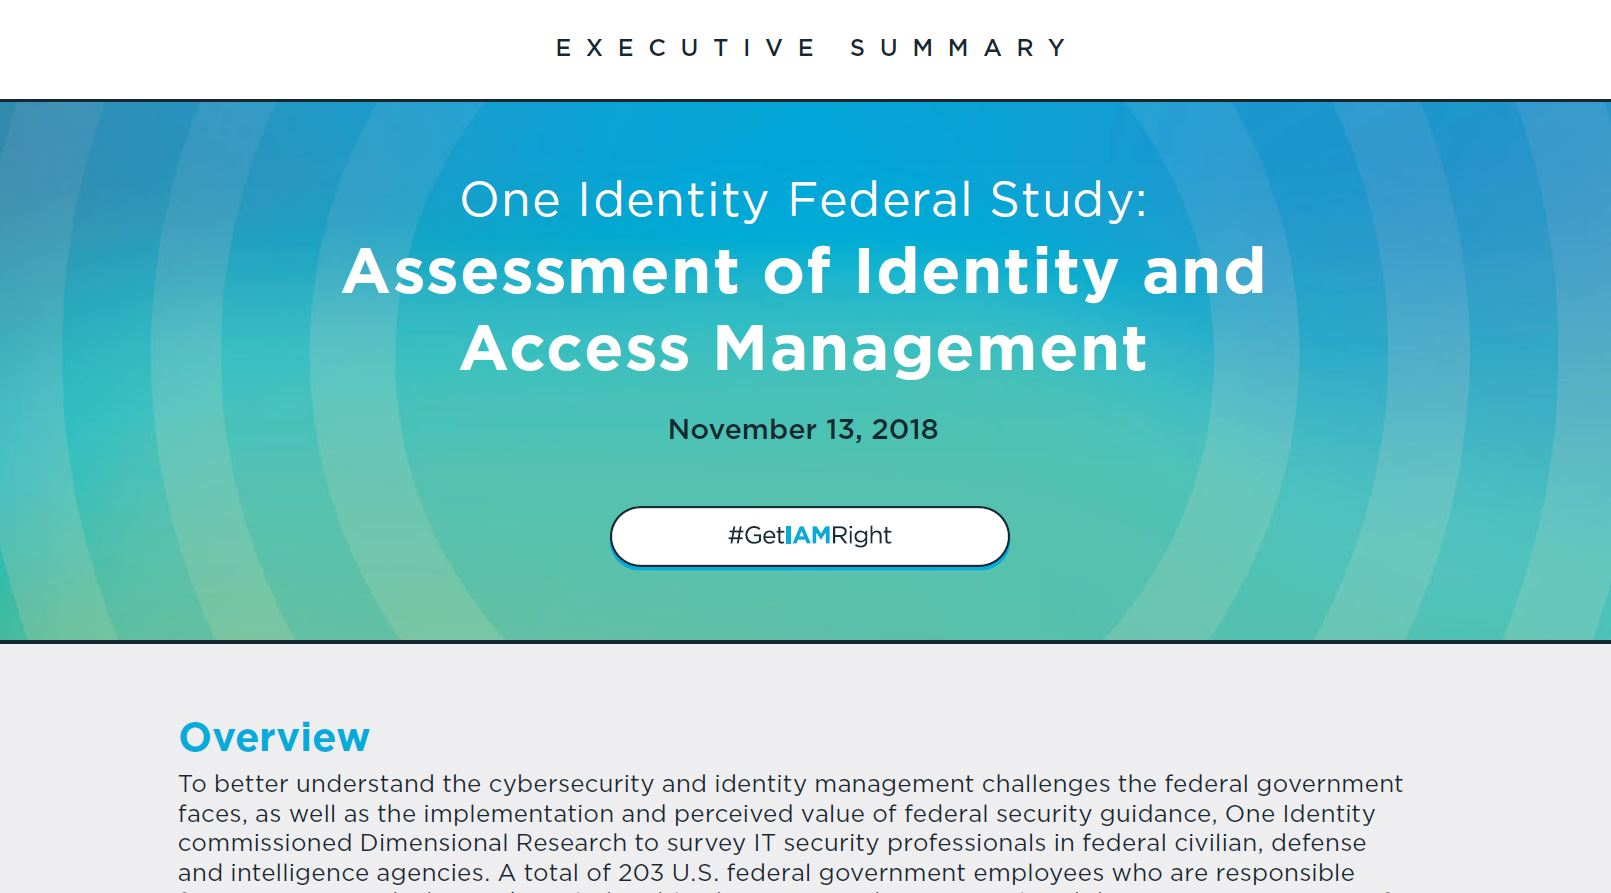 Assessment of Identity & Access Management